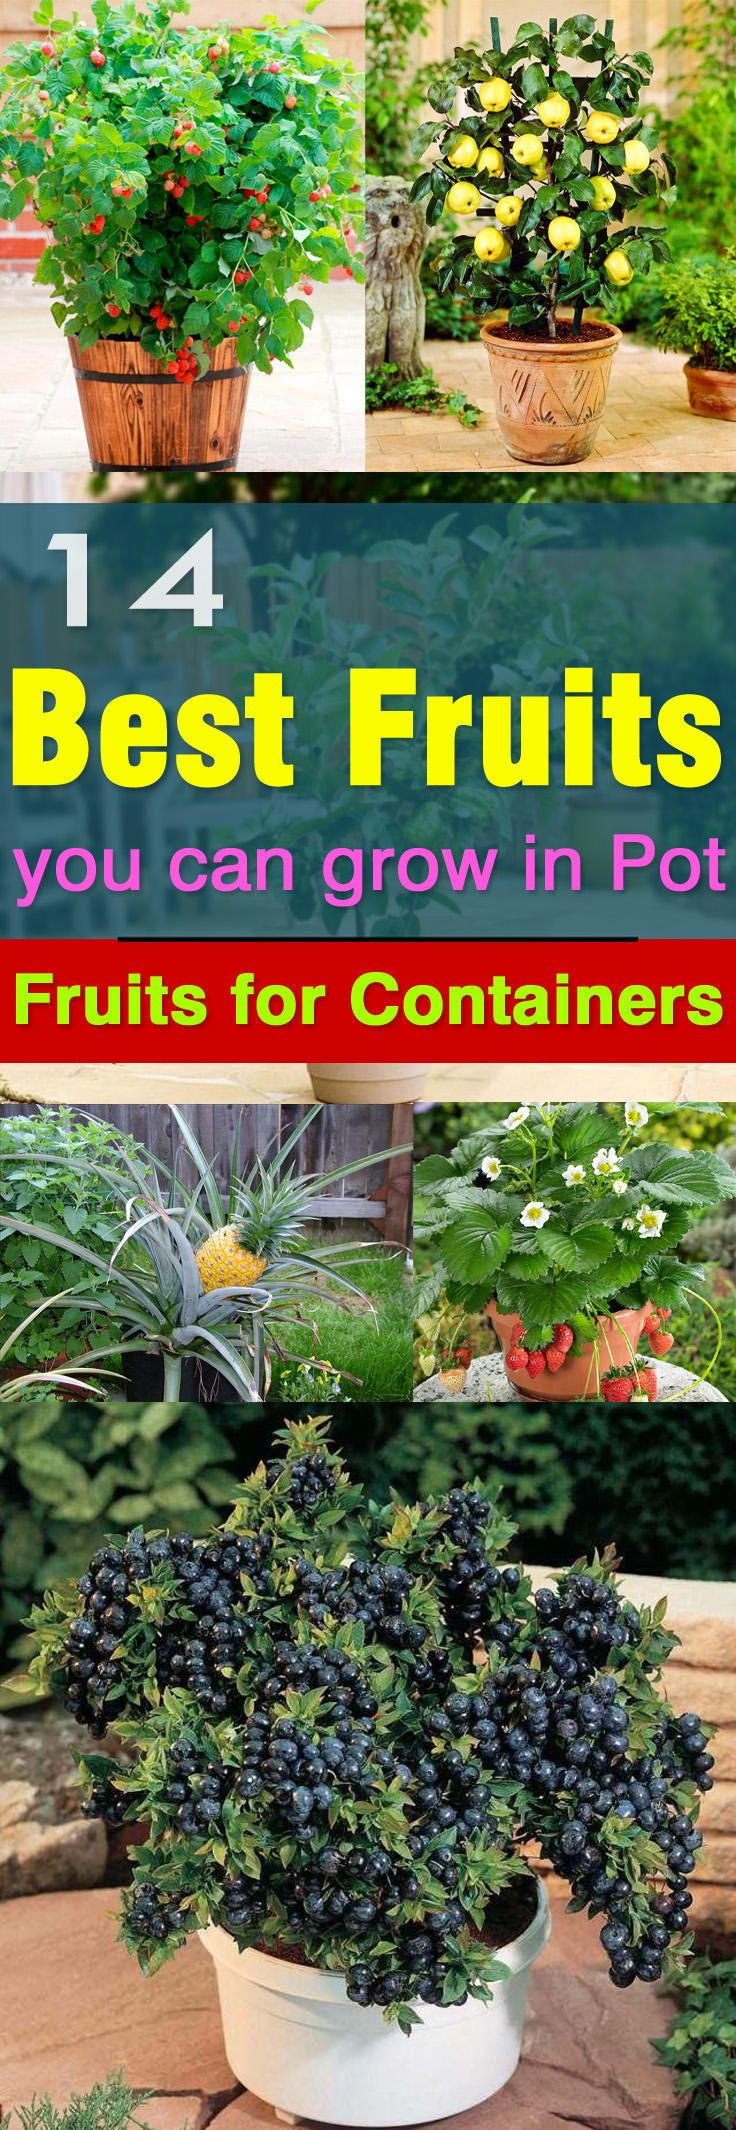 Container Garden Ideas mothers day container garden ideas Best Fruits To Grow In Pots